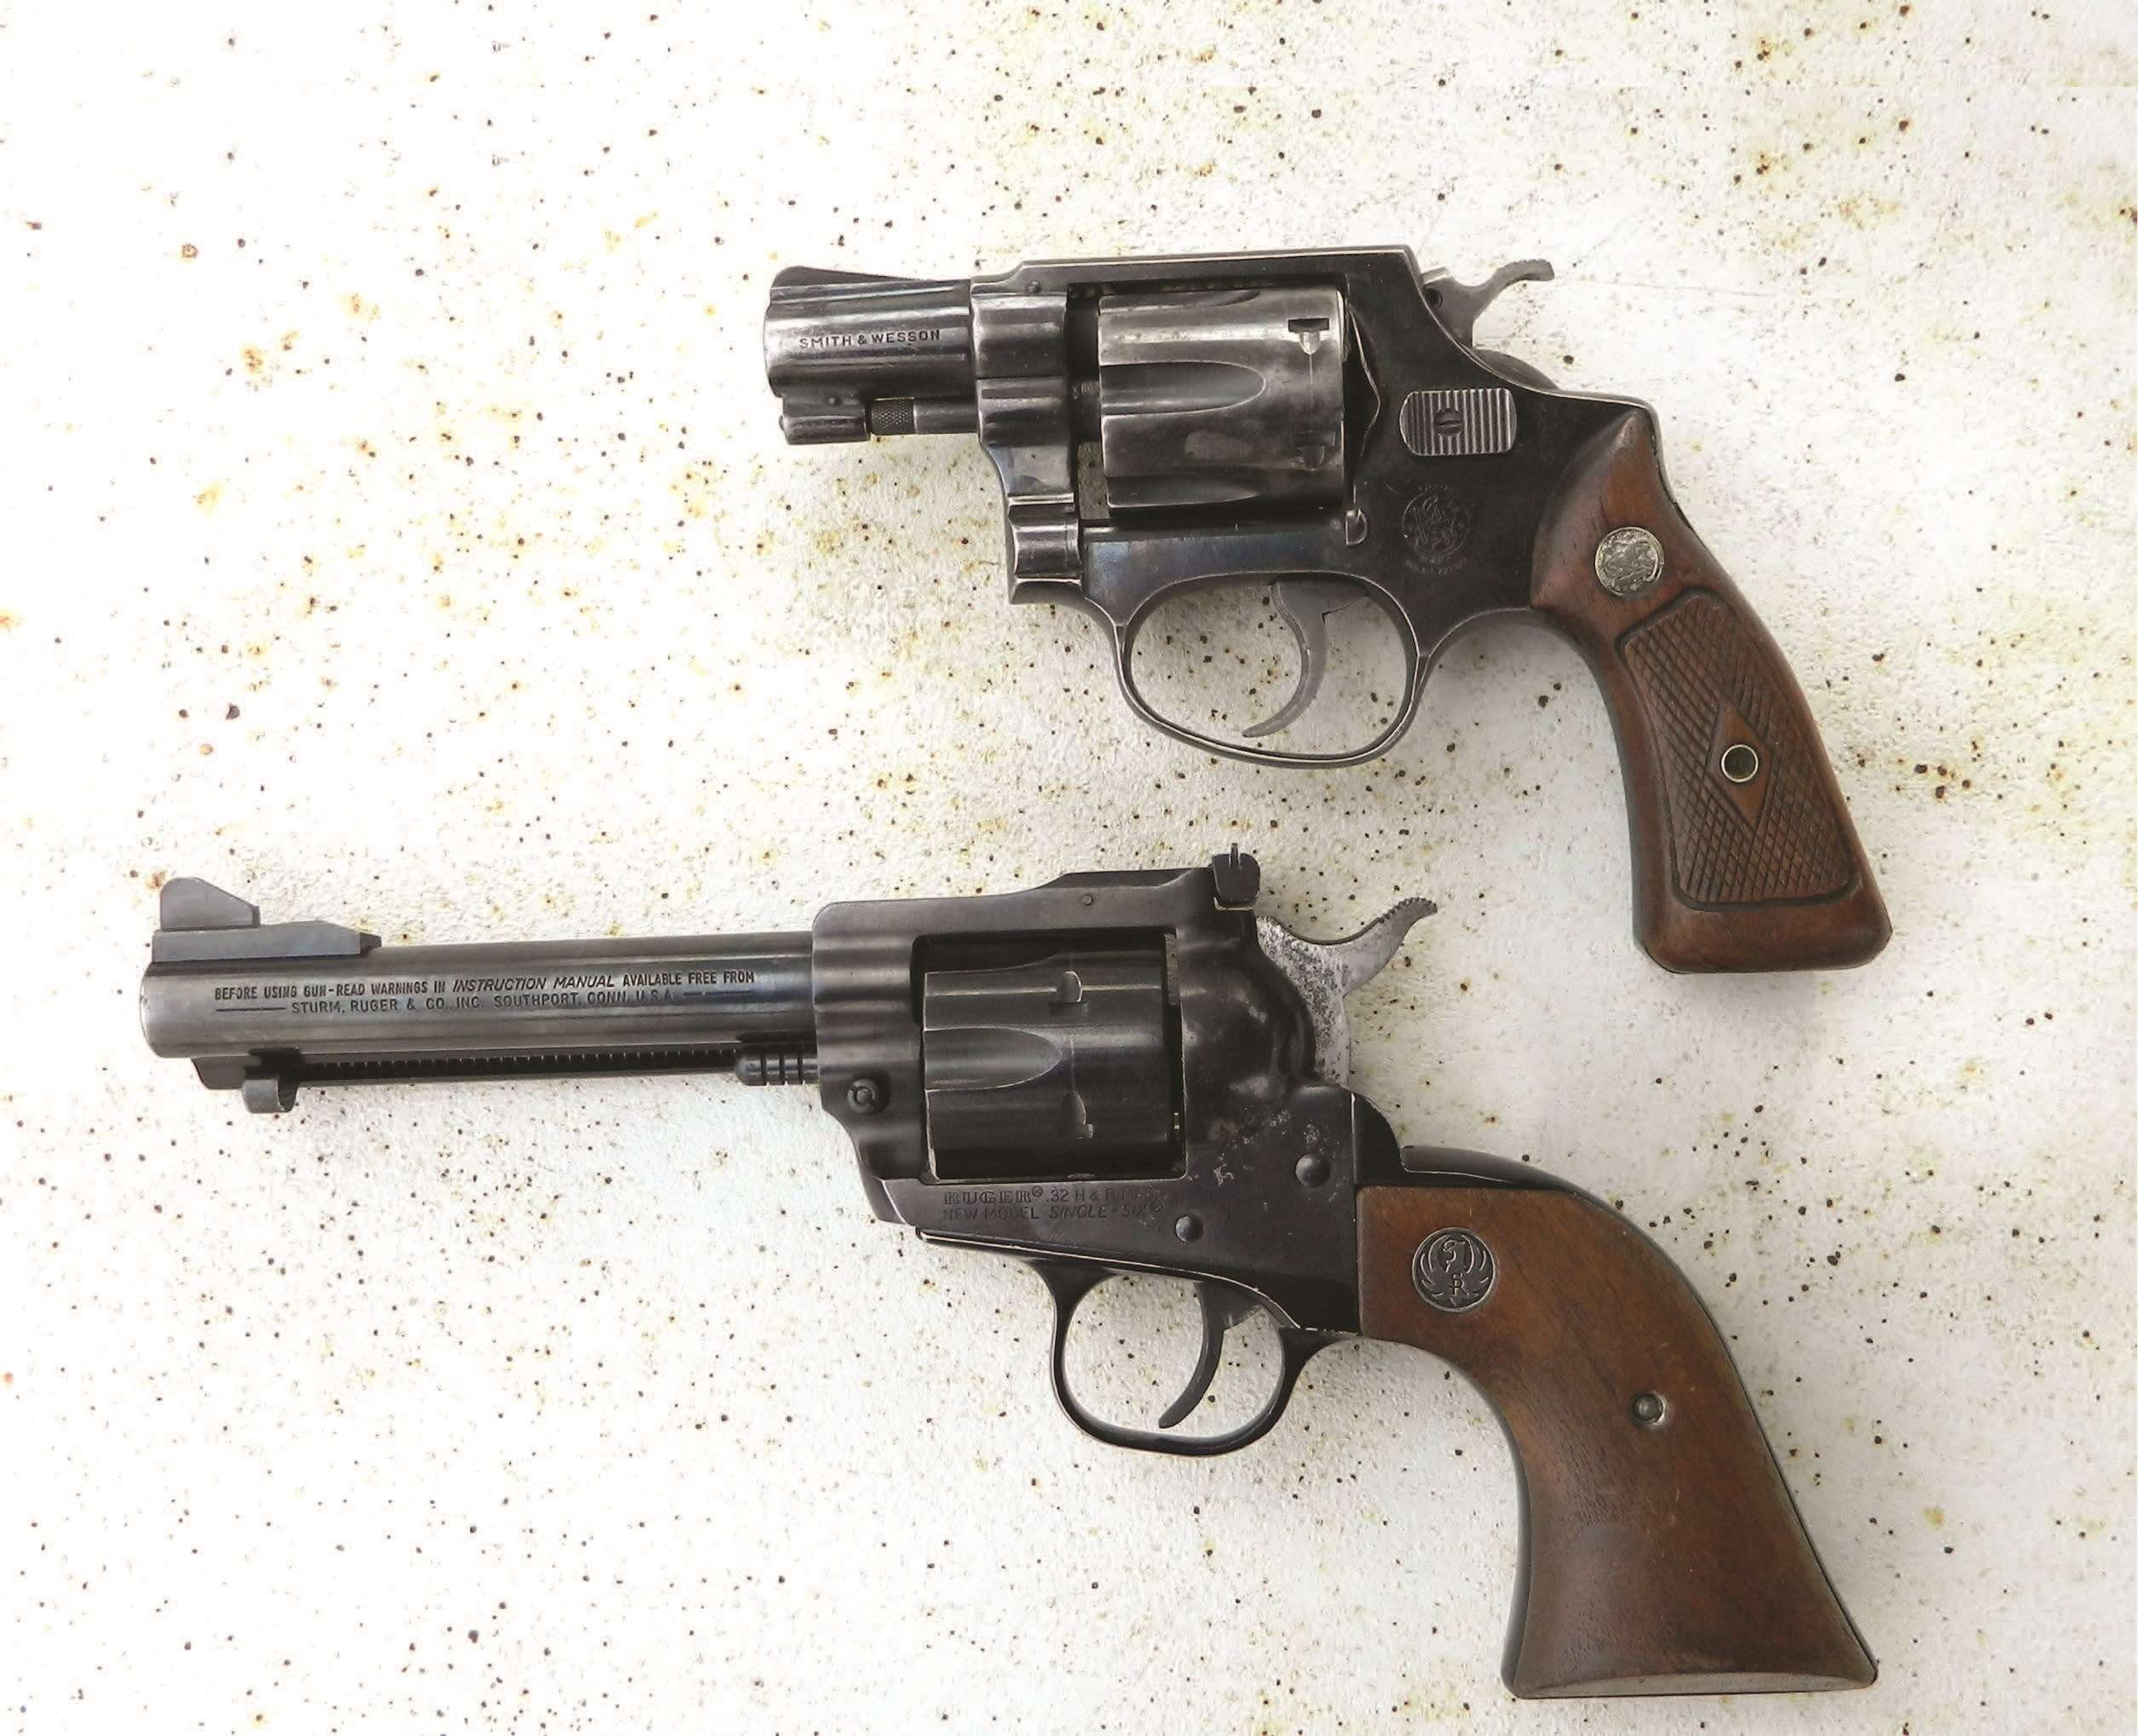 These .32 caliber revolvers are excellent recreational handguns with much merit for sporting use as well.